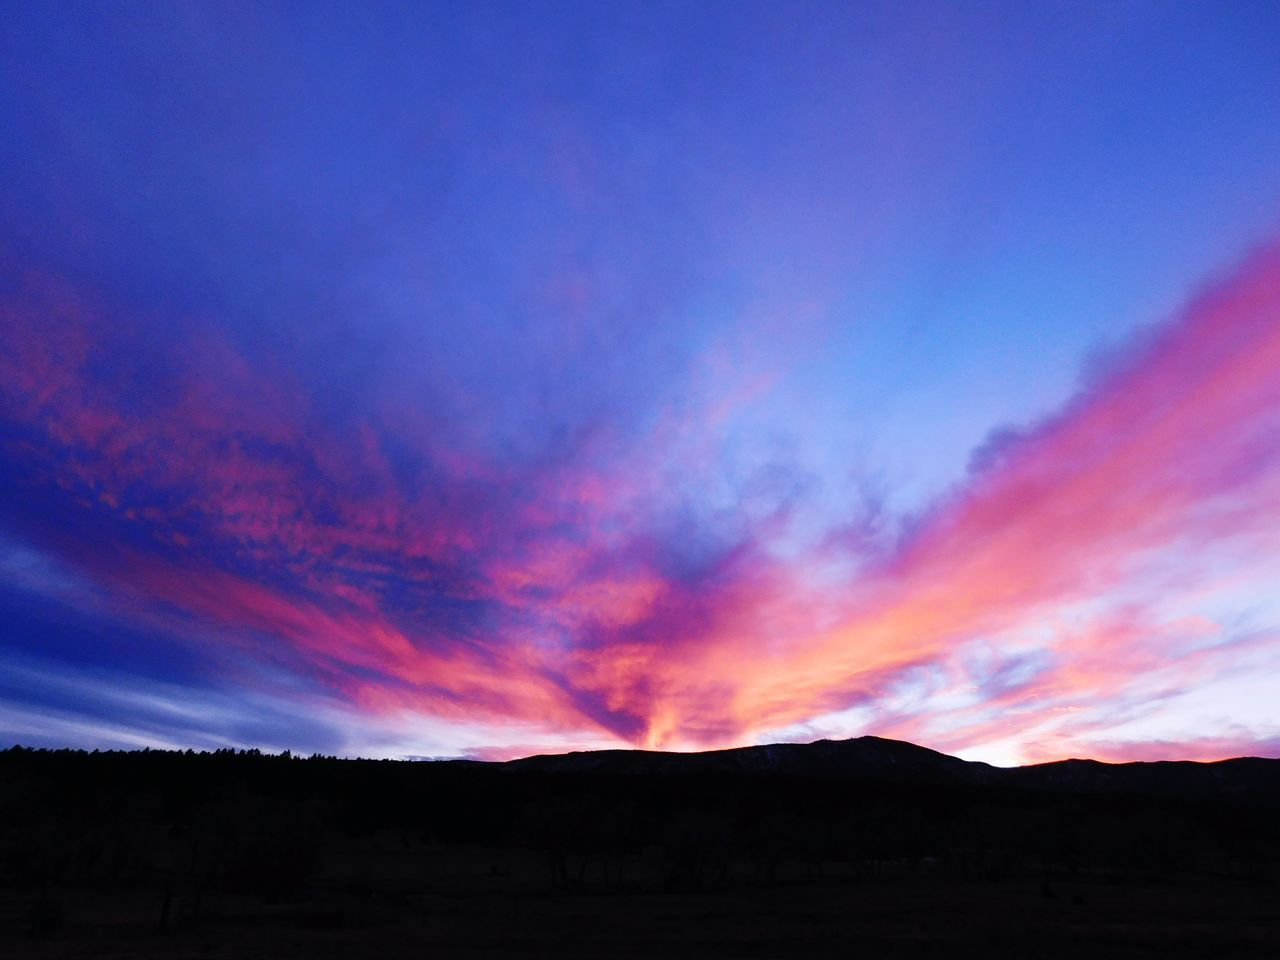 Sunset Landscape Mountain Outdoors No People Scenics Sky Beauty In Nature Nature Day Newmexicoweather Newmexicoskies Newmexicomountain Newmexicophotography NewMexicoTRUE Nature Beauty In Nature Newmexicosunset Newmexicosunsets Dusk Dusky Sky